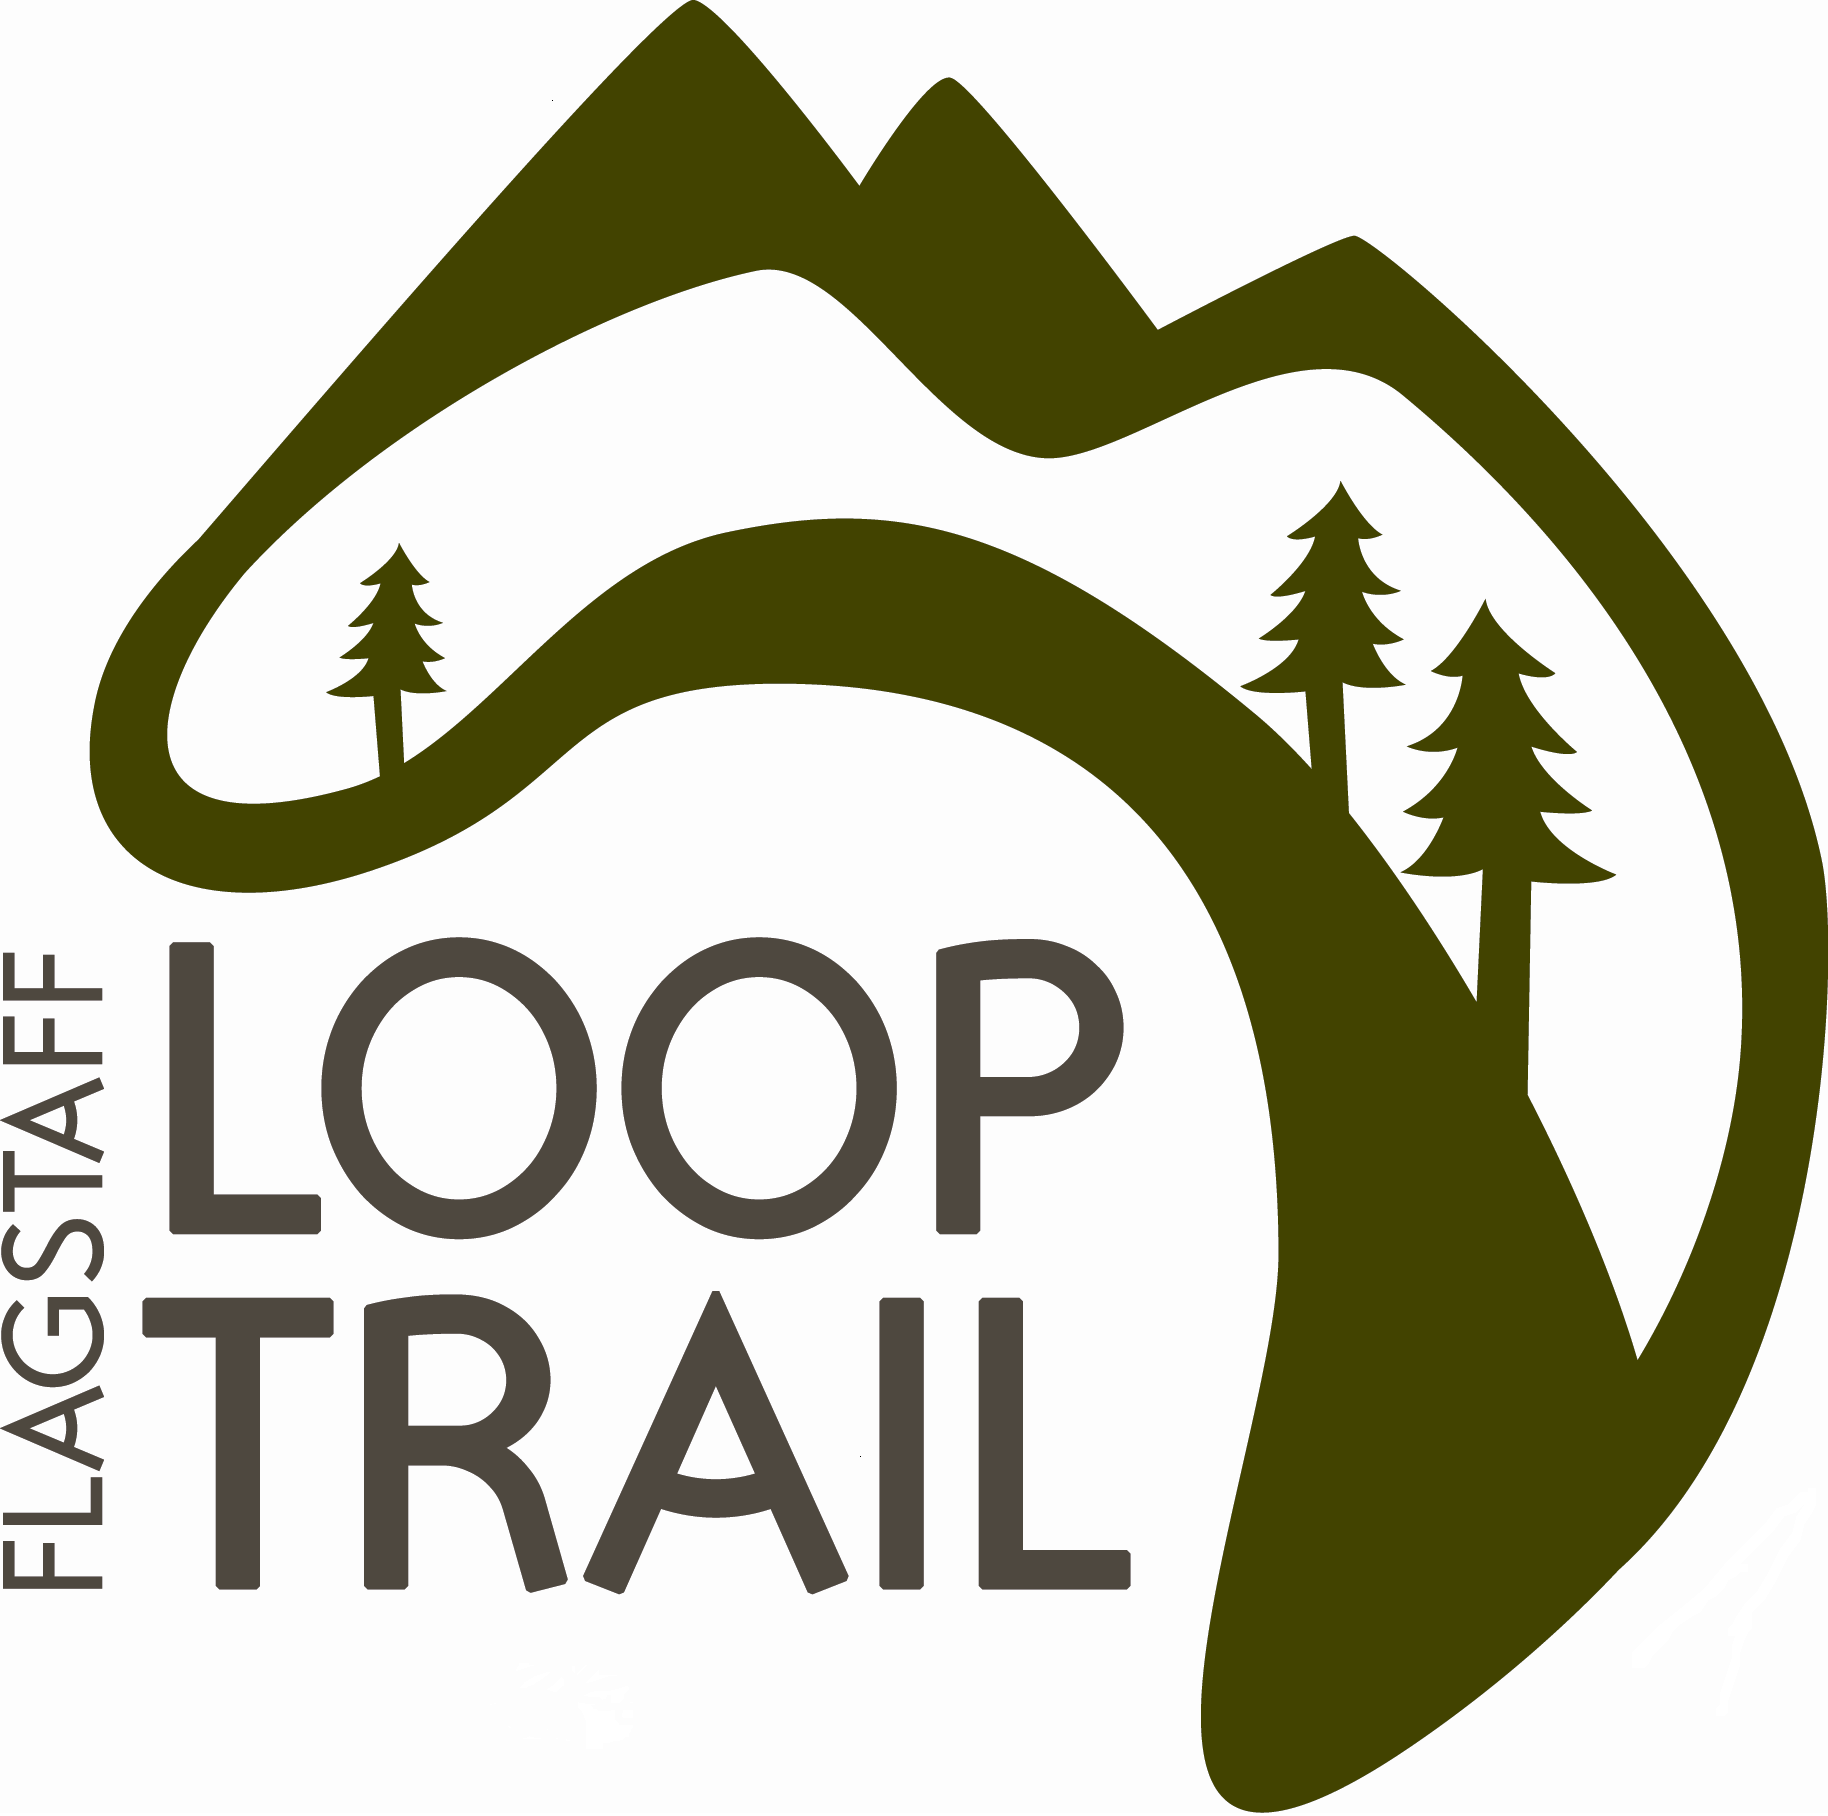 Flagstaff Loop Trail Logo